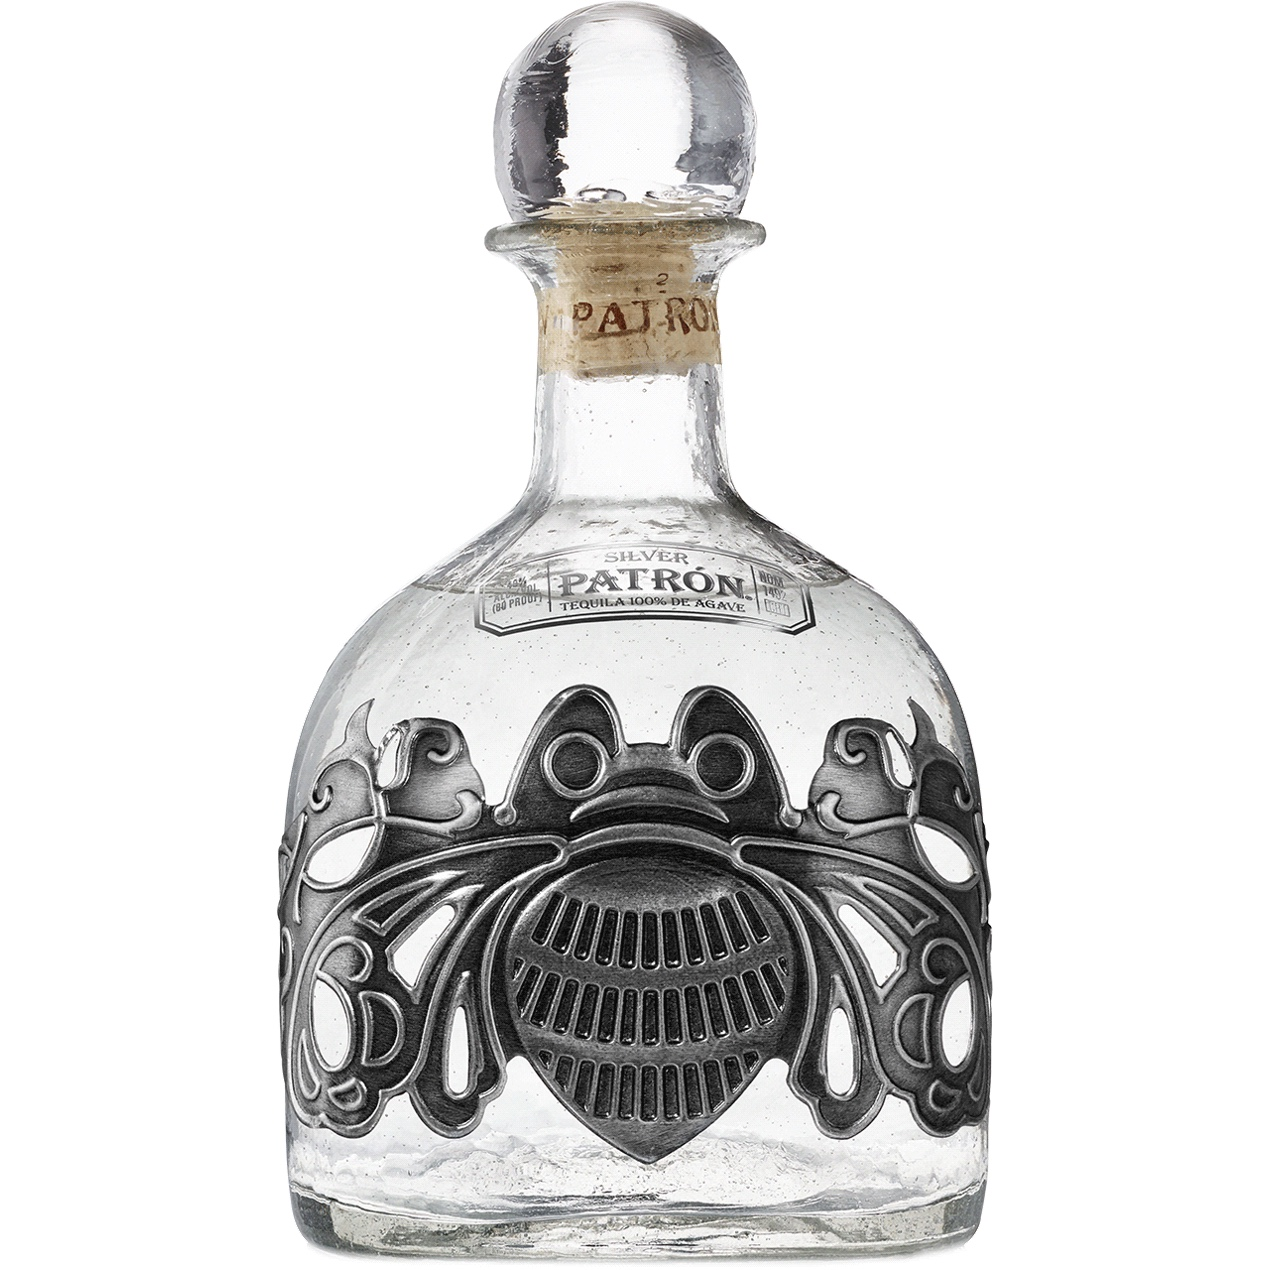 Collector's Edition bottle patron